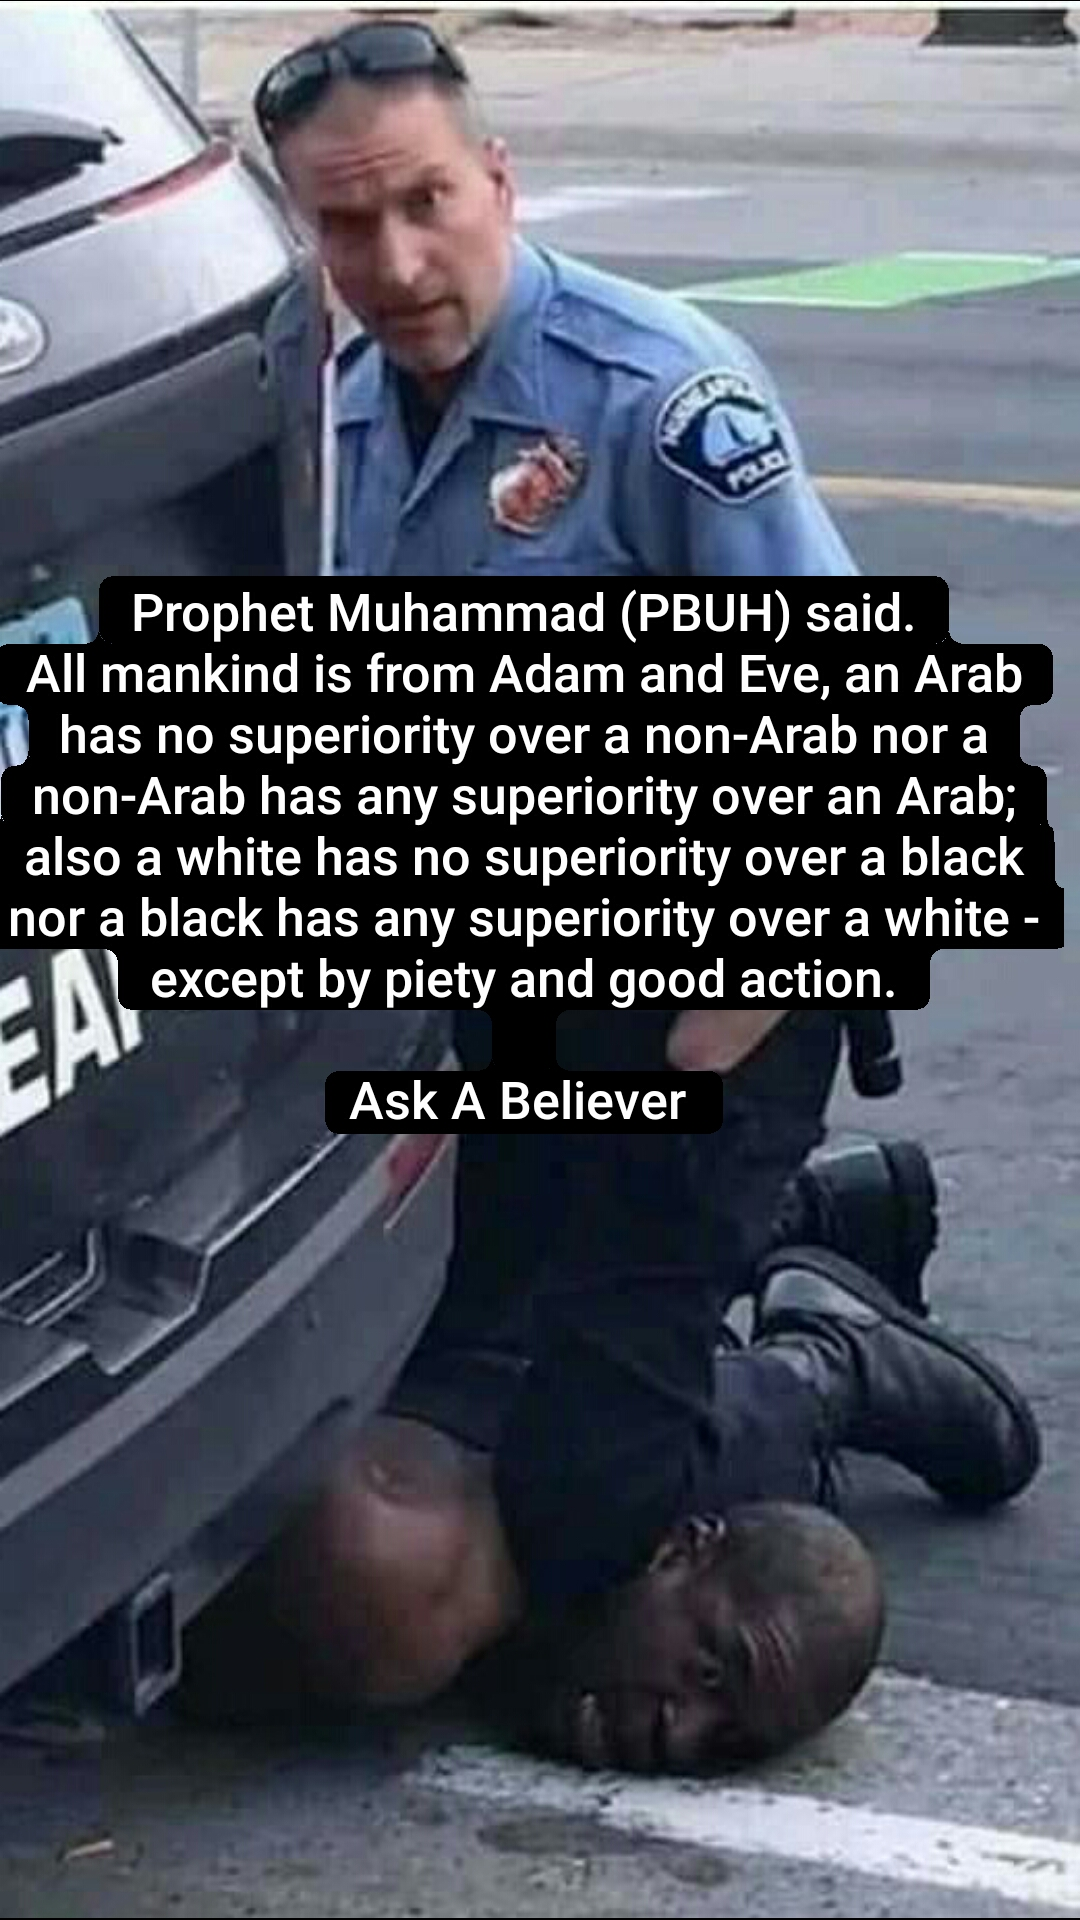 Prophet Muhammad (PBUH) said. All mankind is from Adam and Eve, an Arab has no superiority over a non-Arab nor a non-Arab has any superiority over an Arab; also a white has no superiority over a black nor a black has any superiority over a white - except by piety and good action.  Ask A Believer